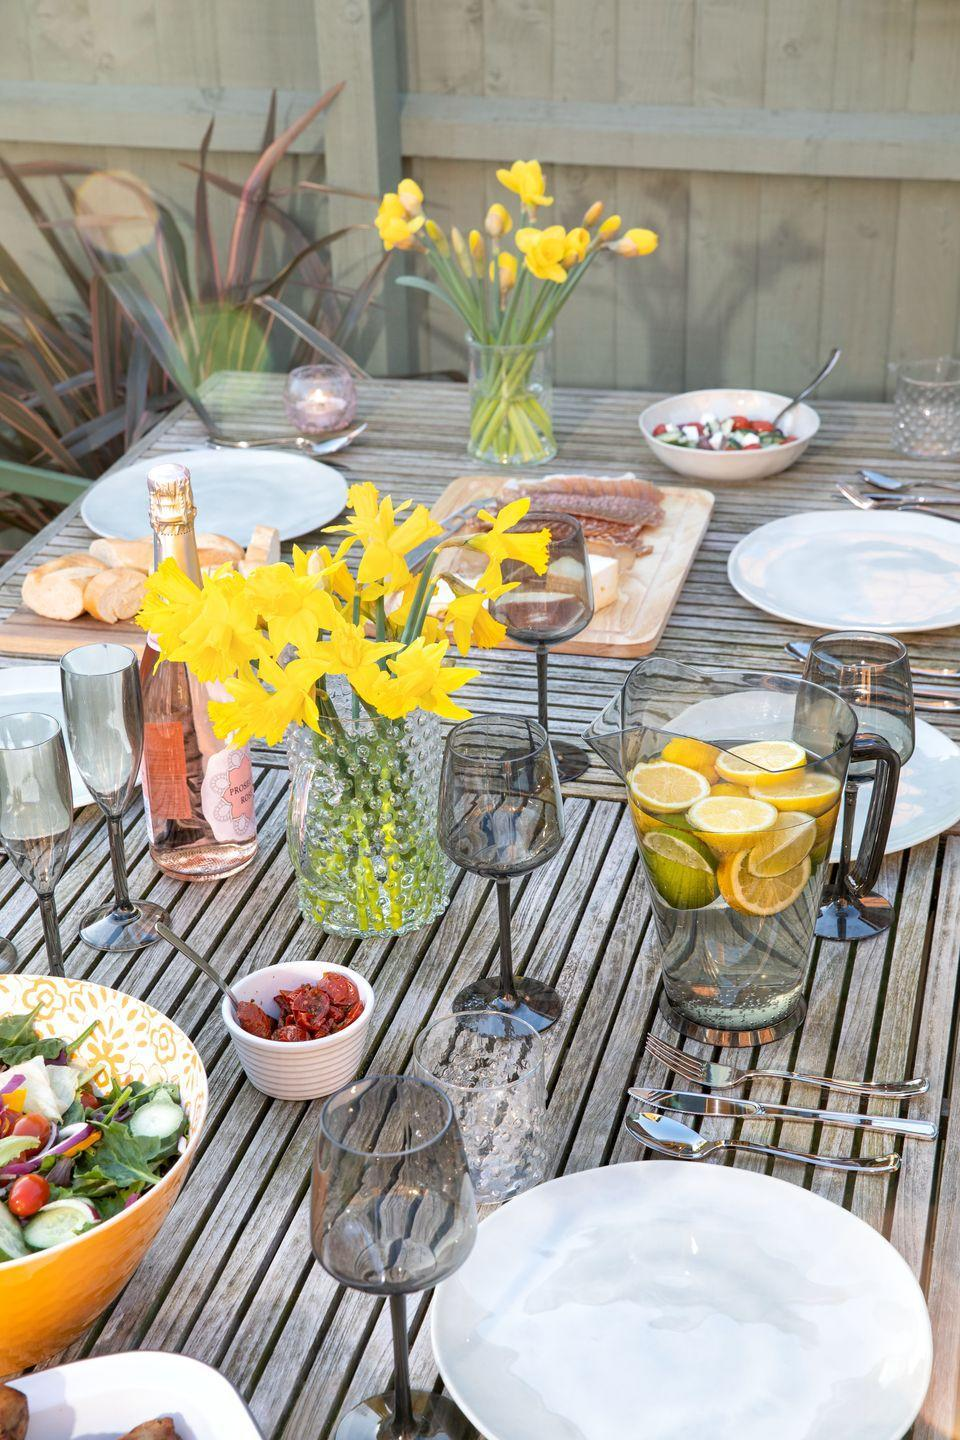 """<p>Get geared up for summer by updating your <a href=""""https://www.housebeautiful.com/uk/garden/g32181157/bistro-set/"""" rel=""""nofollow noopener"""" target=""""_blank"""" data-ylk=""""slk:dining"""" class=""""link rapid-noclick-resp"""">dining</a> essentials. From plates to serving bowls and platters, the bargain retailer has all you need for a garden feast. </p><p>'With temperatures already balmy for the time of year and hopes of a long, hot summer, there's no better way to celebrate than alfresco,' say Poundland. </p><p><a class=""""link rapid-noclick-resp"""" href=""""https://www.poundland.co.uk/store-finder/"""" rel=""""nofollow noopener"""" target=""""_blank"""" data-ylk=""""slk:FIND NEAREST STORE"""">FIND NEAREST STORE</a></p>"""